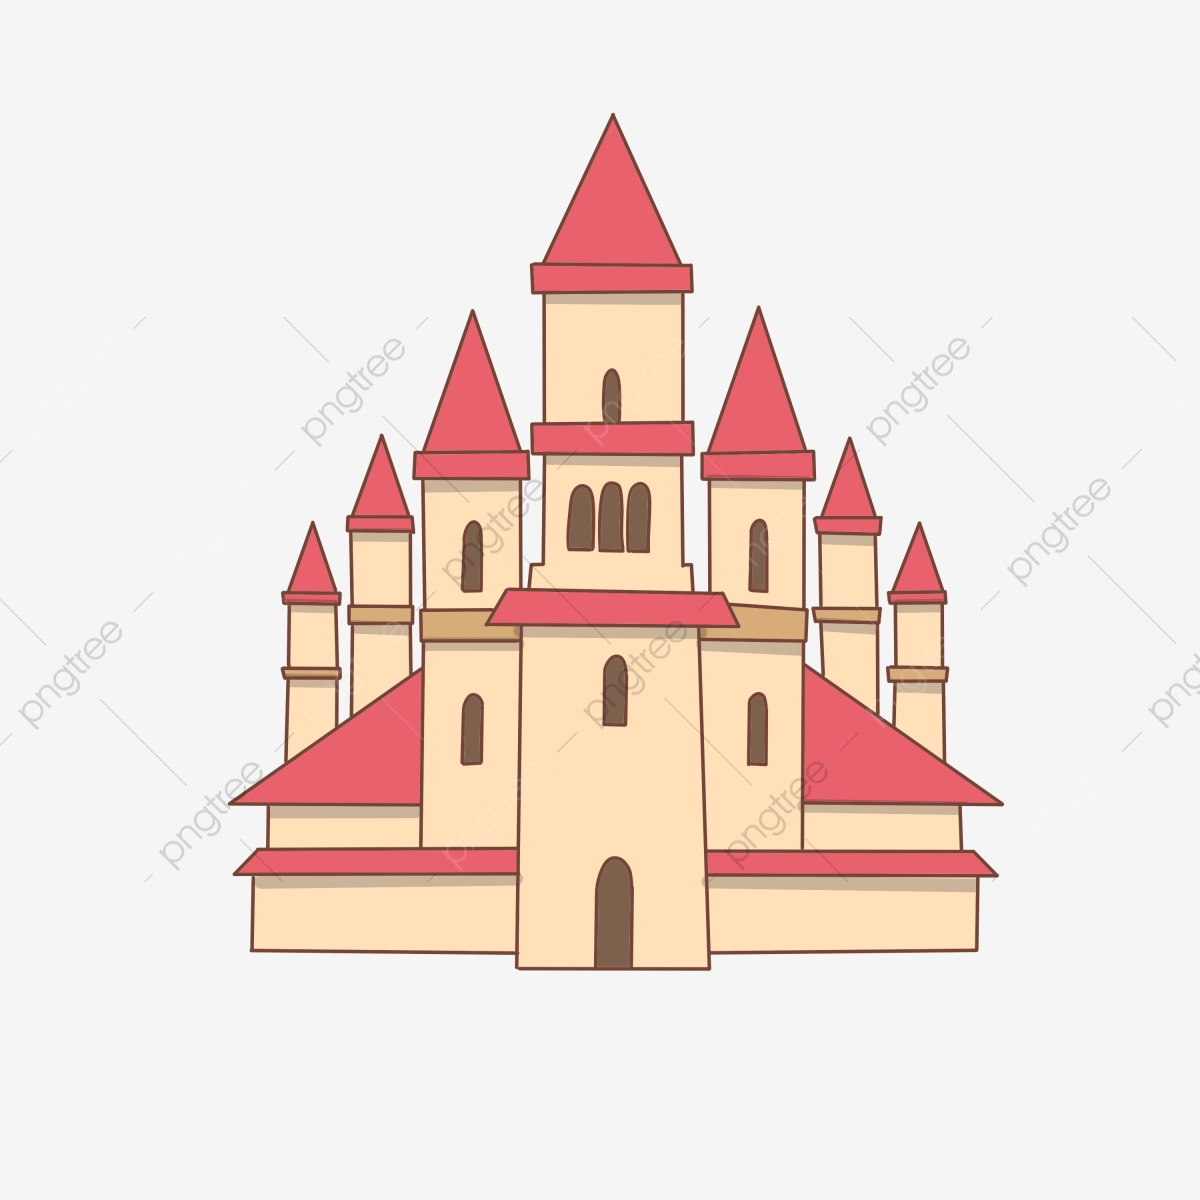 Roof cartoon brown royal. Palace clipart red castle